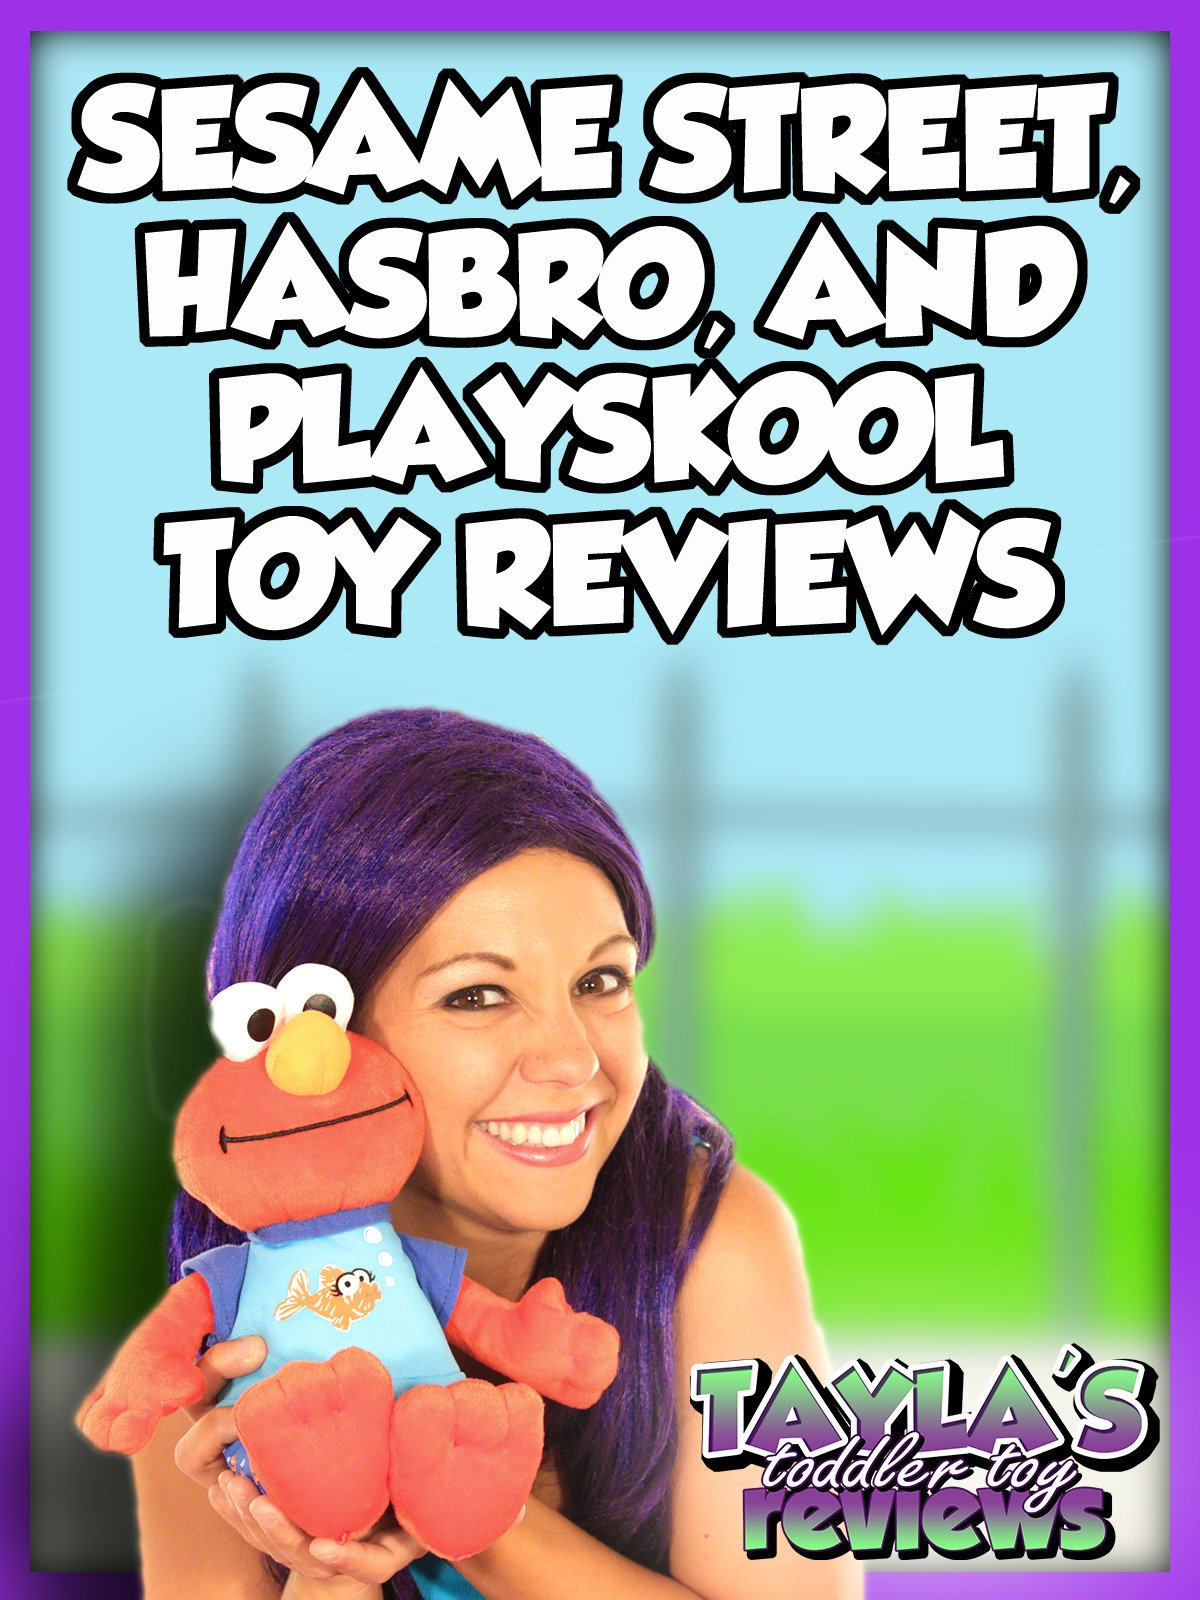 Review: Sesame Street, Playskool, and Hasbro Toy Reviews